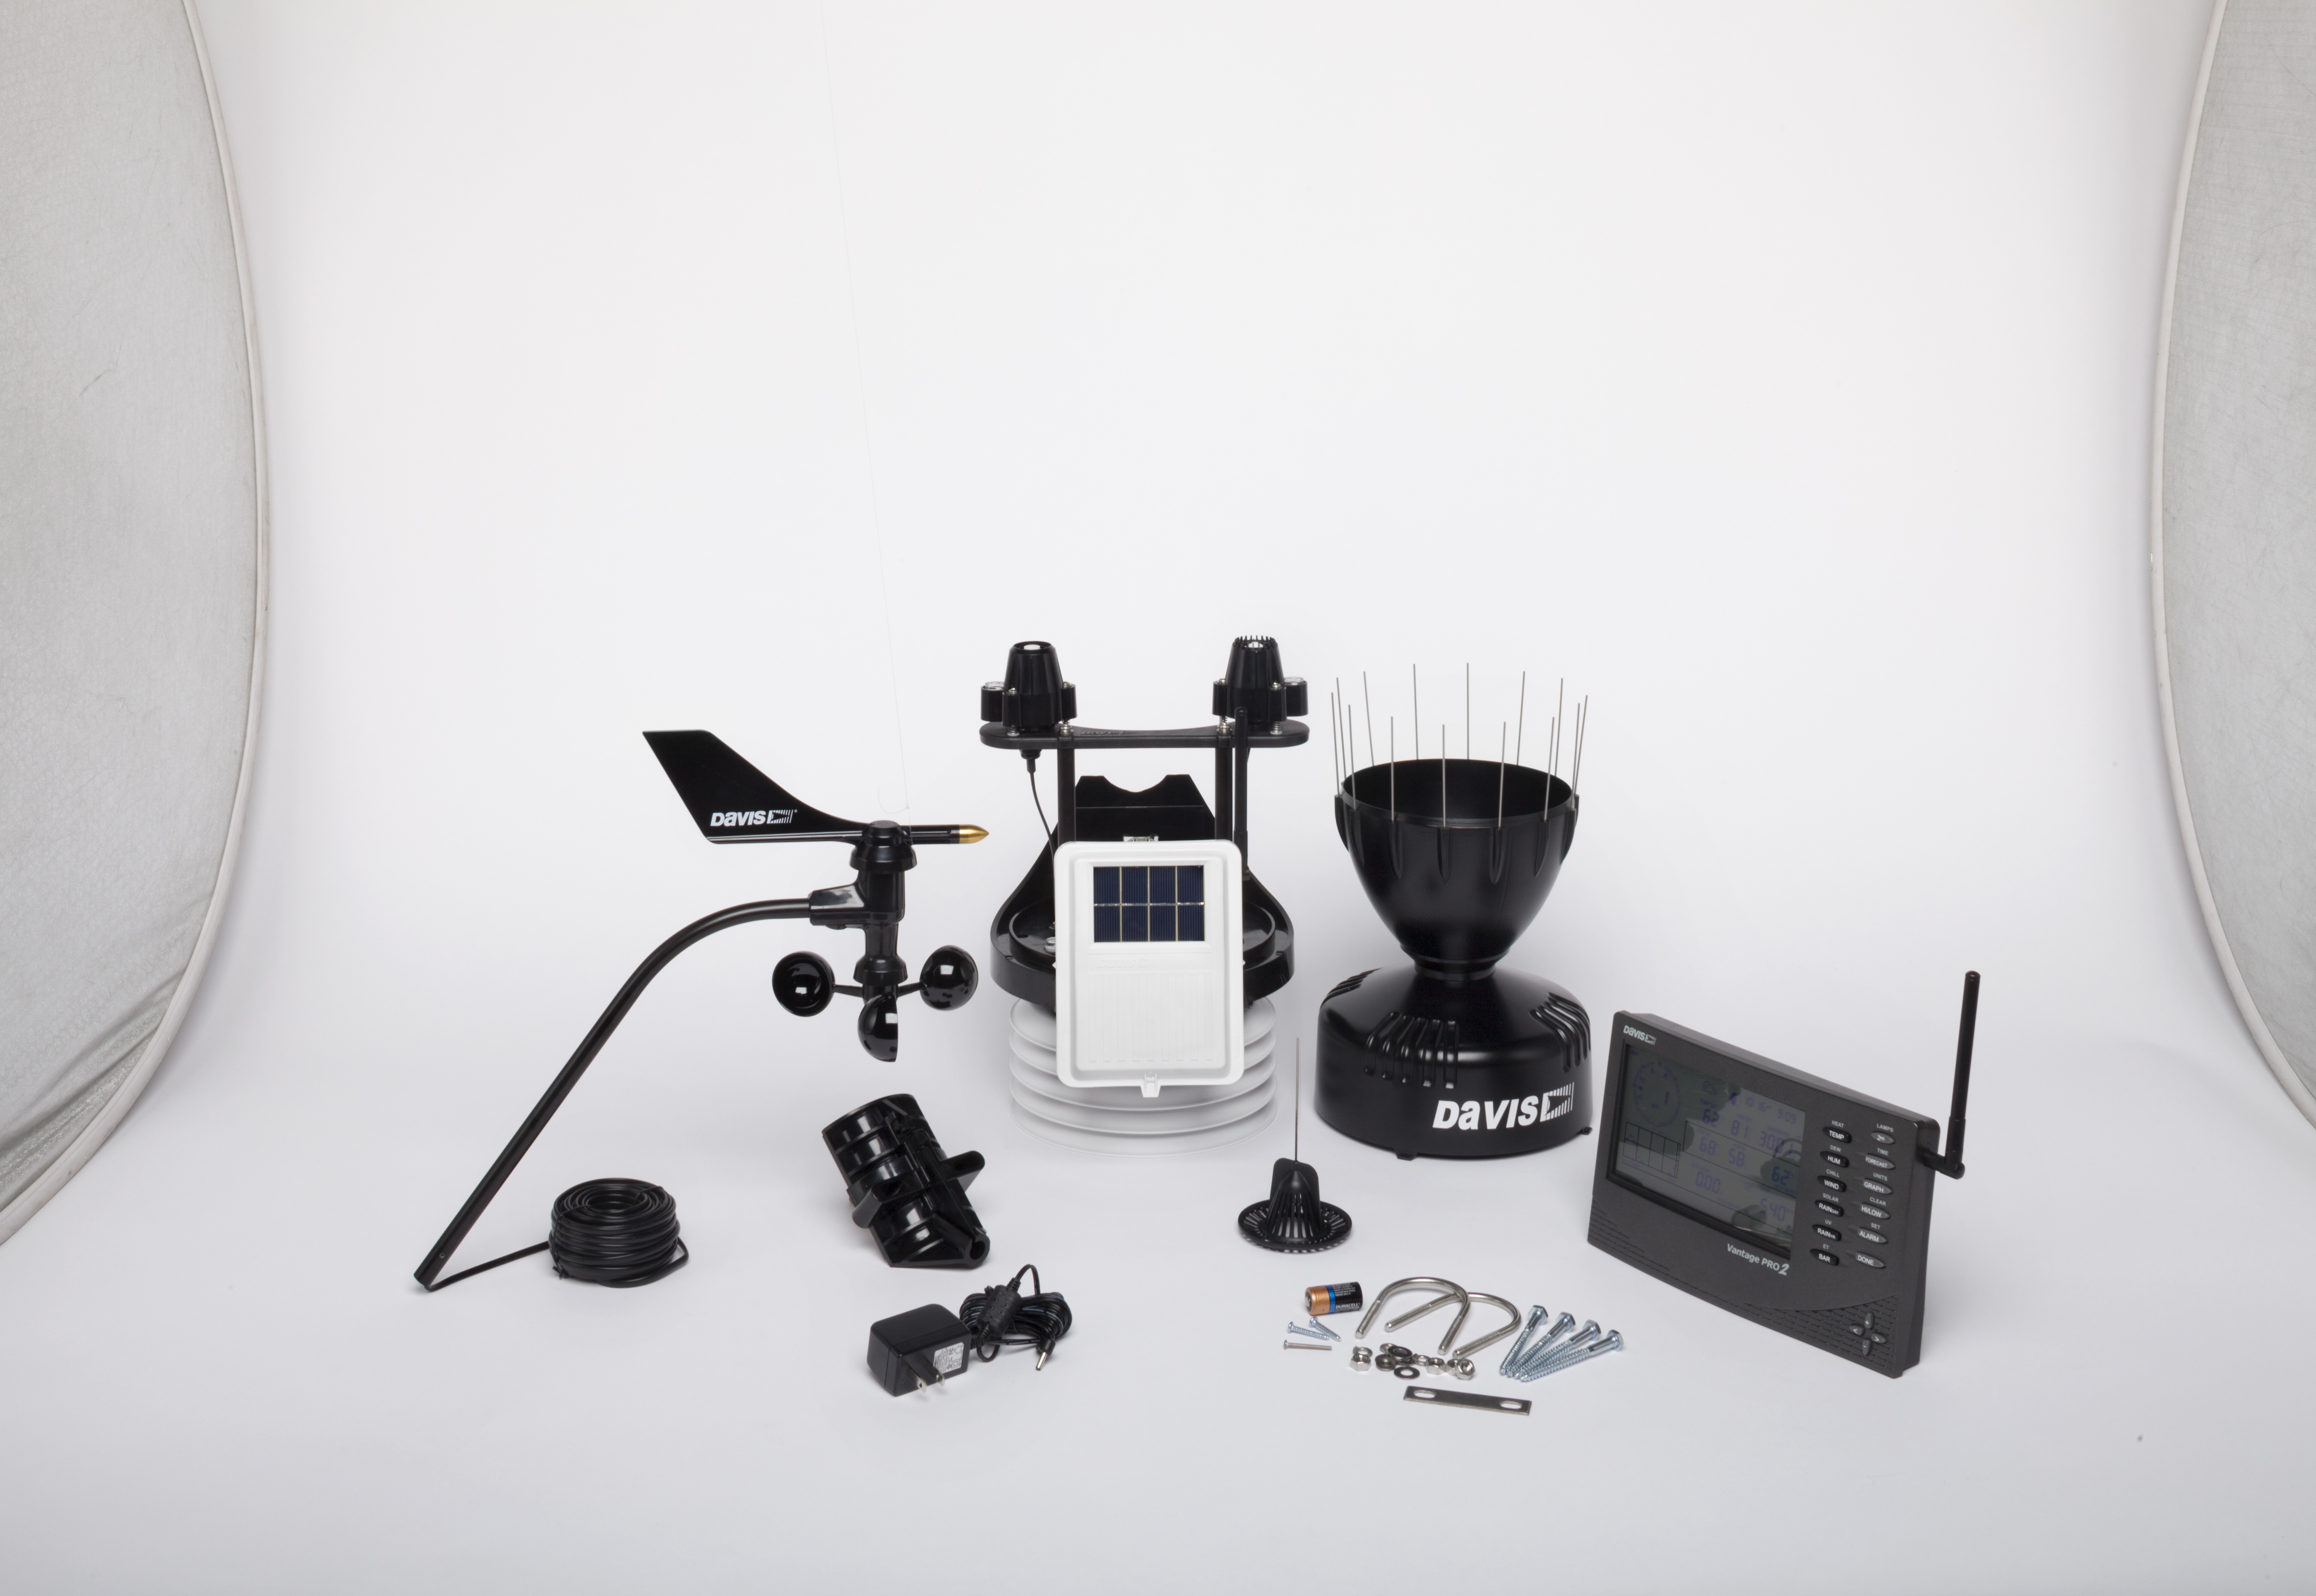 Davis 6162 Vantage Pro 2 Plus professional weather station